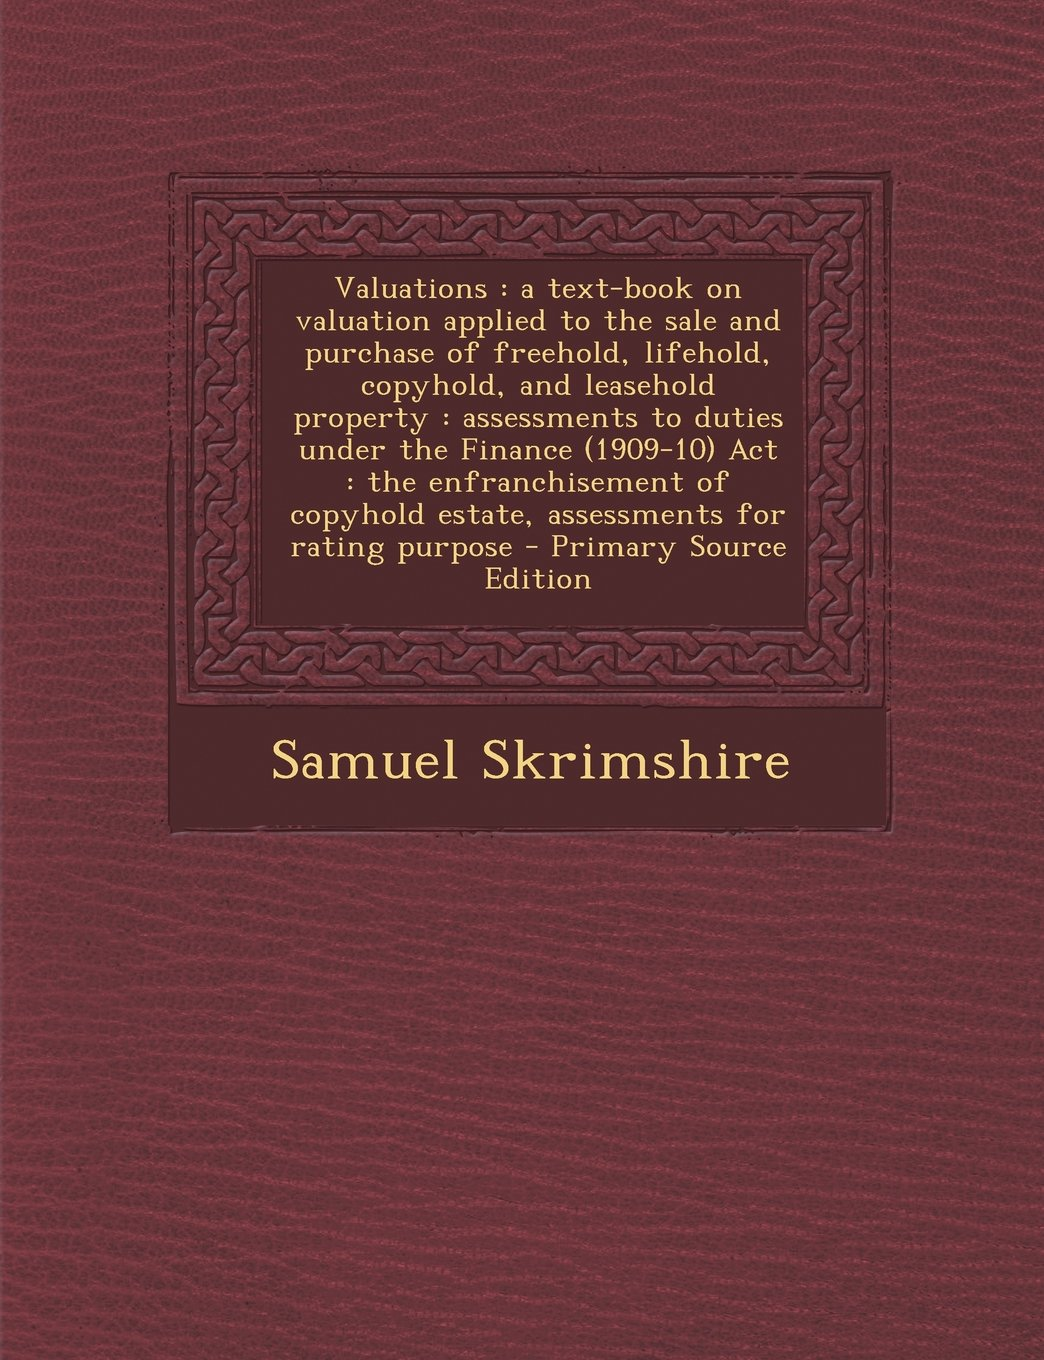 Download Valuations: A Text-Book on Valuation Applied to the Sale and Purchase of Freehold, Lifehold, Copyhold, and Leasehold Property: Ass PDF